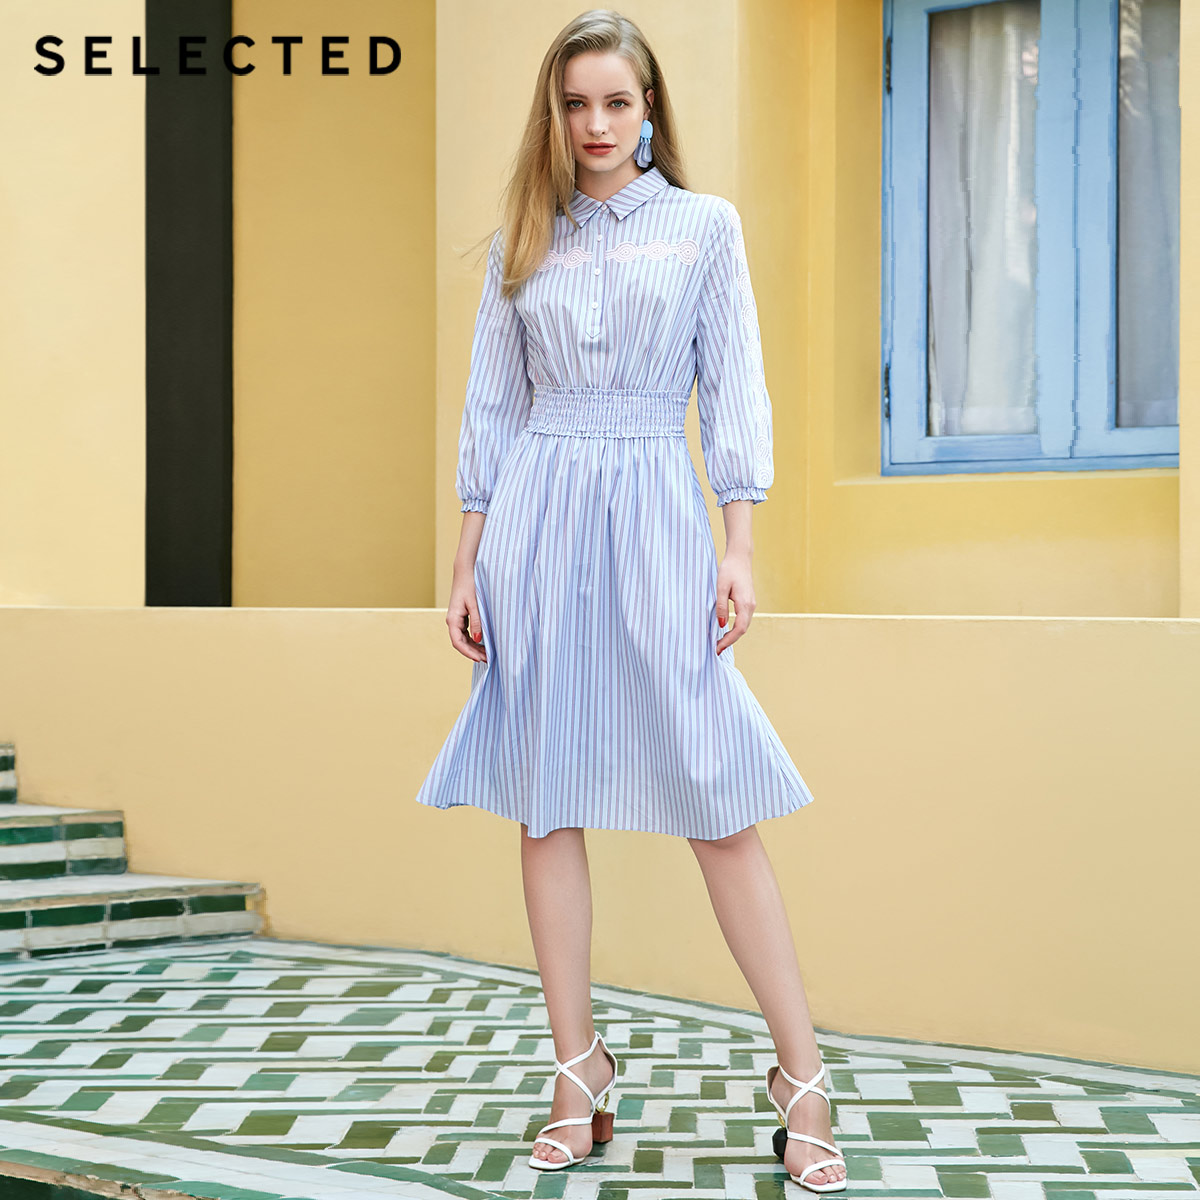 SELECTED Summer Slight Stretch Striped Cut out Dress S 41922J533